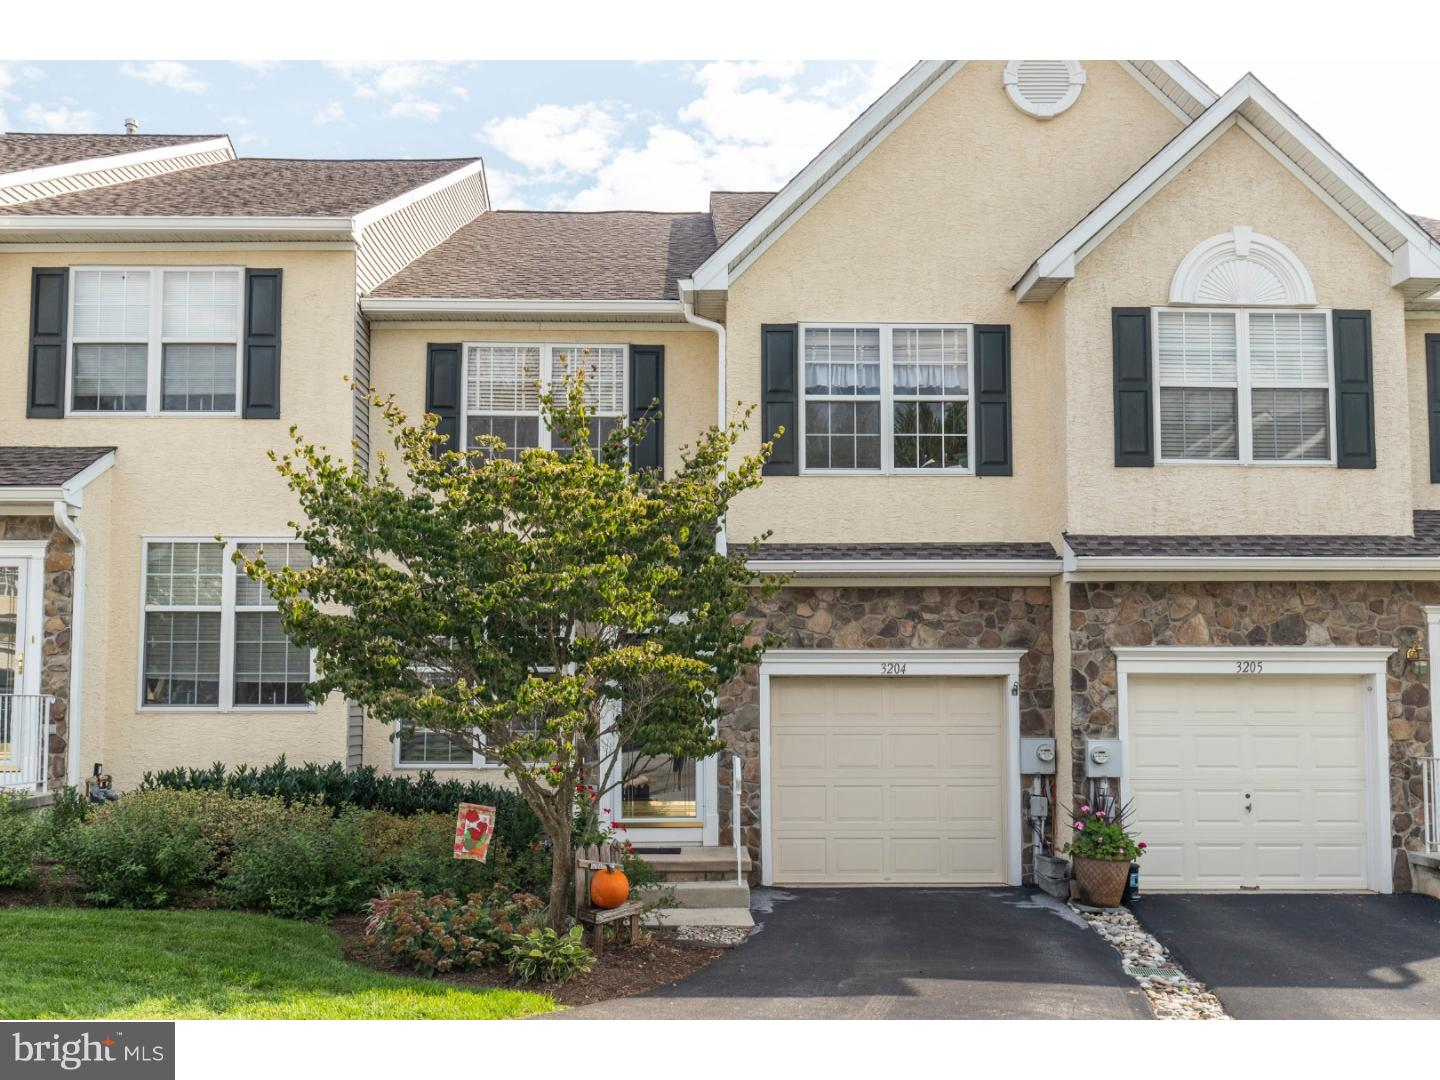 3204 Maplevale Circle Newtown Square, PA 19073